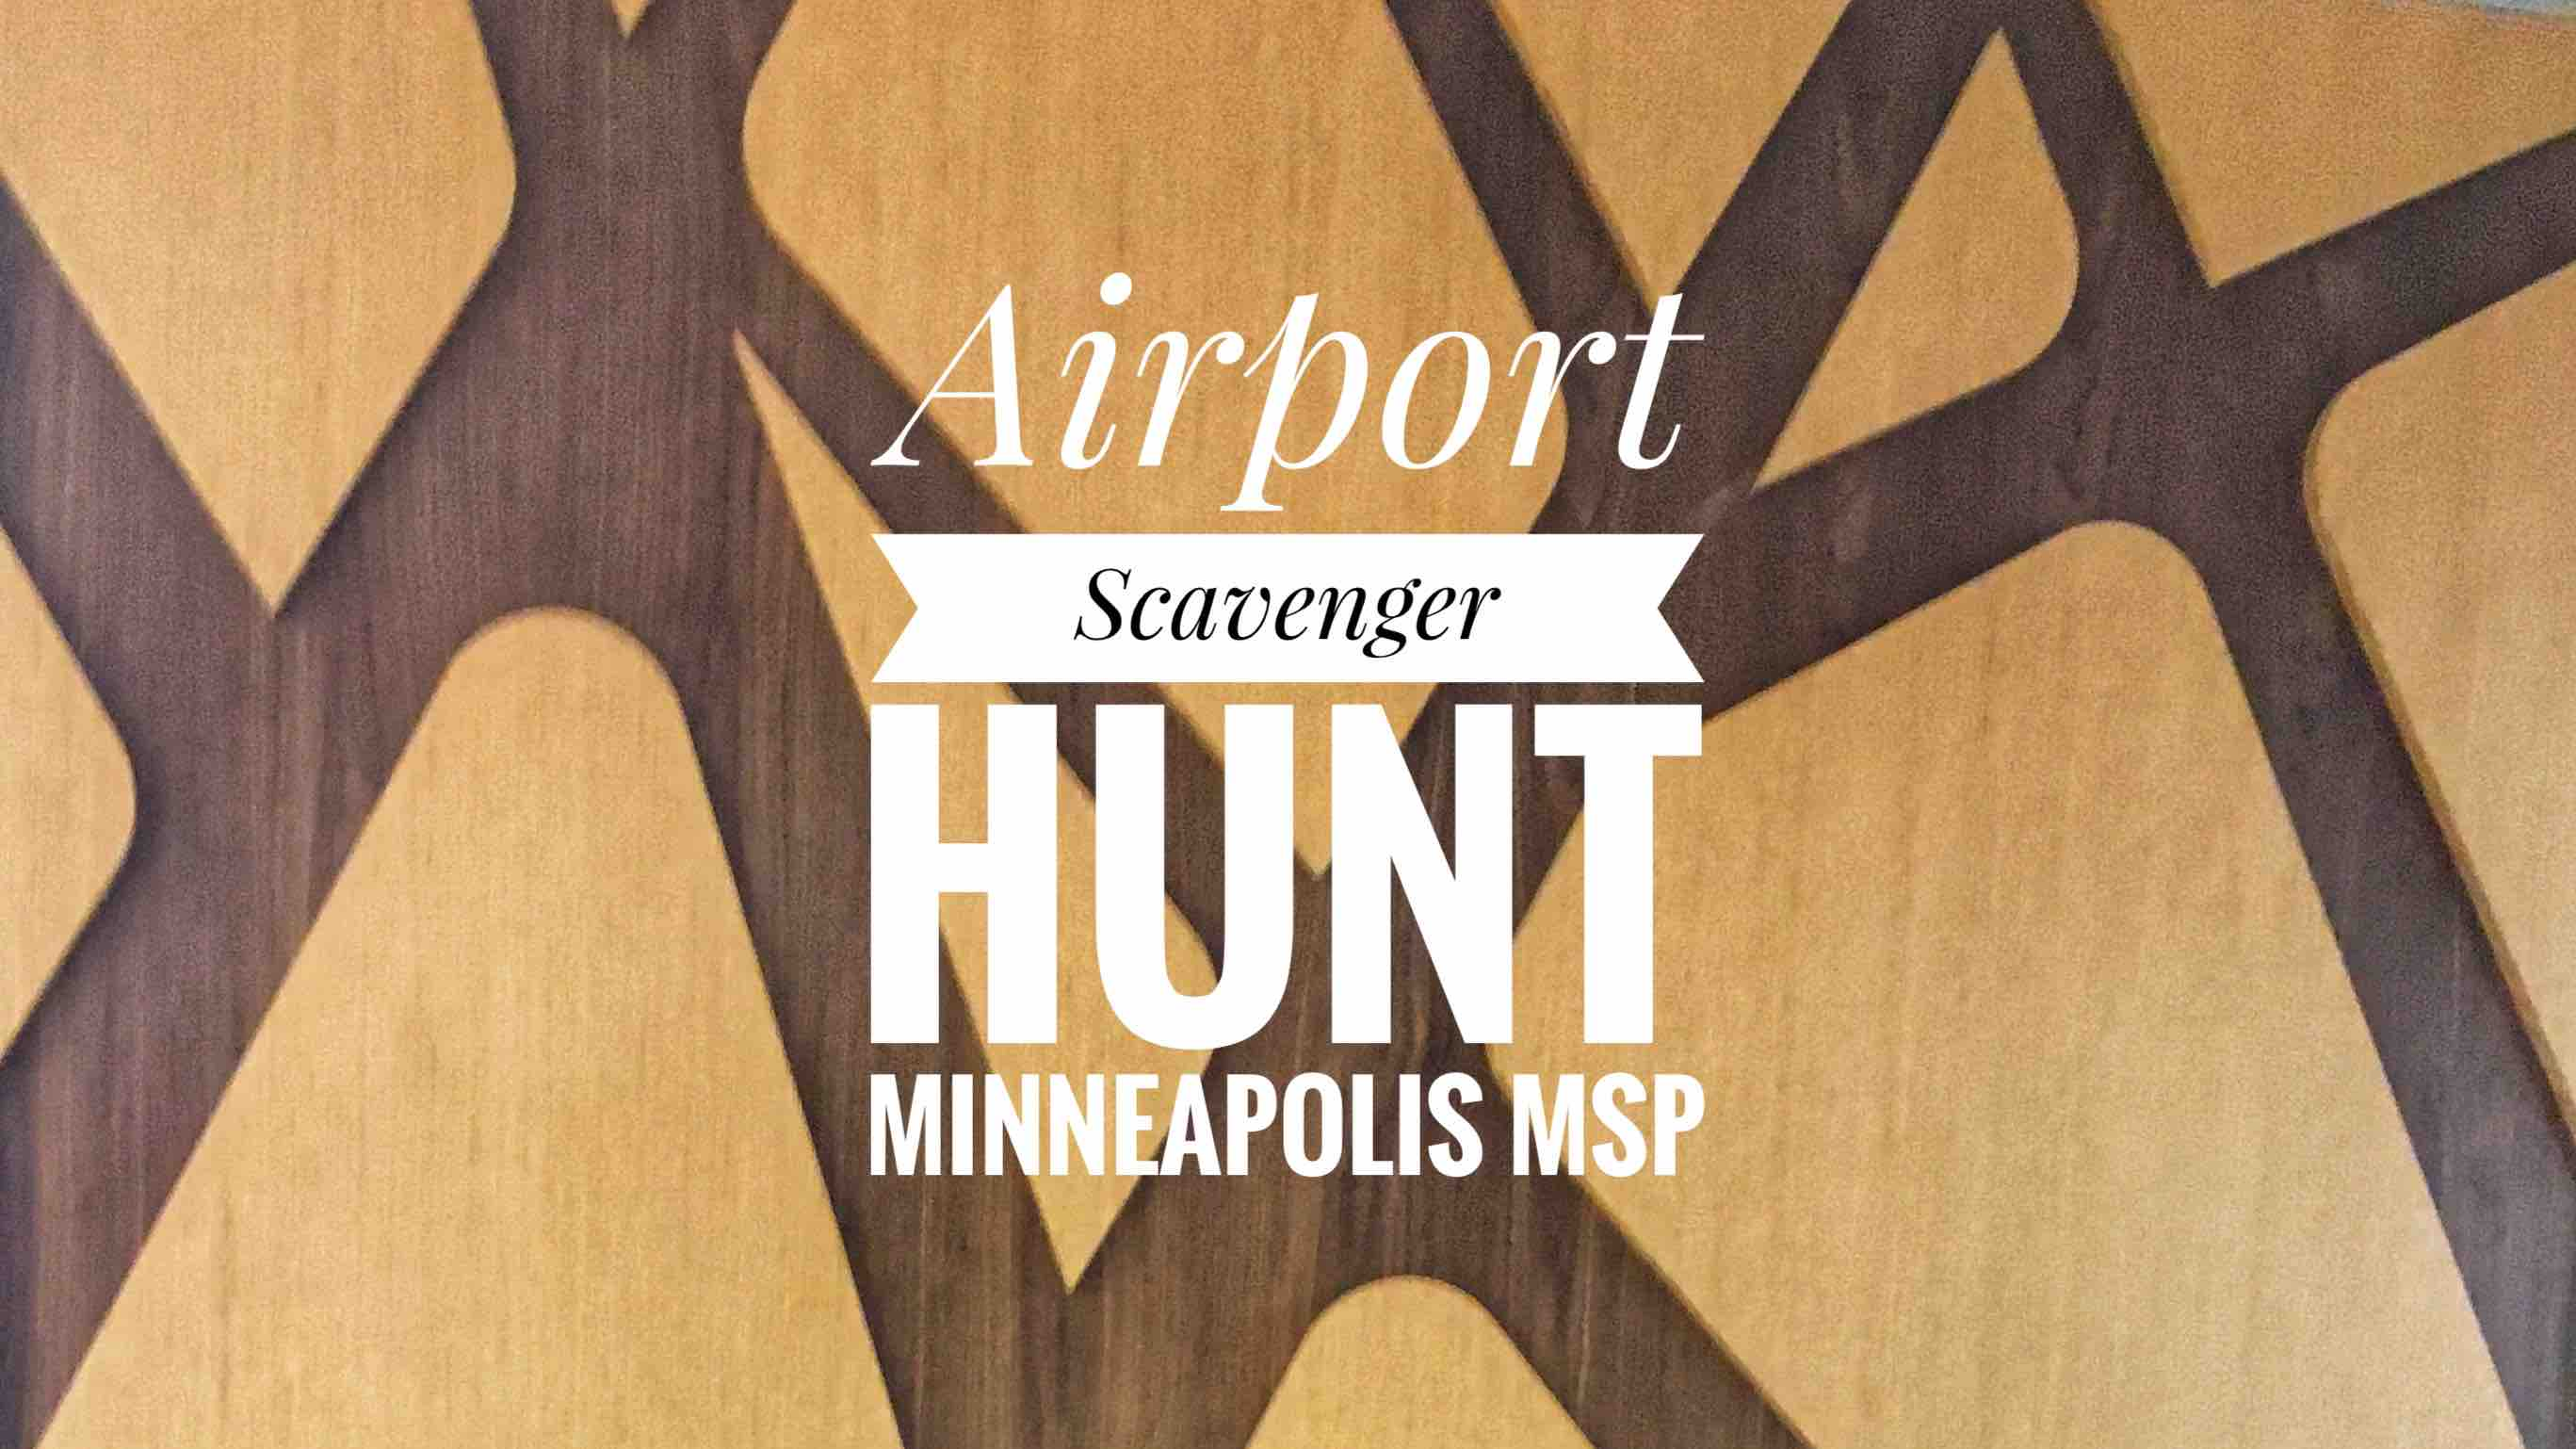 Airport Scavenger Hunt Minneapolis MSP